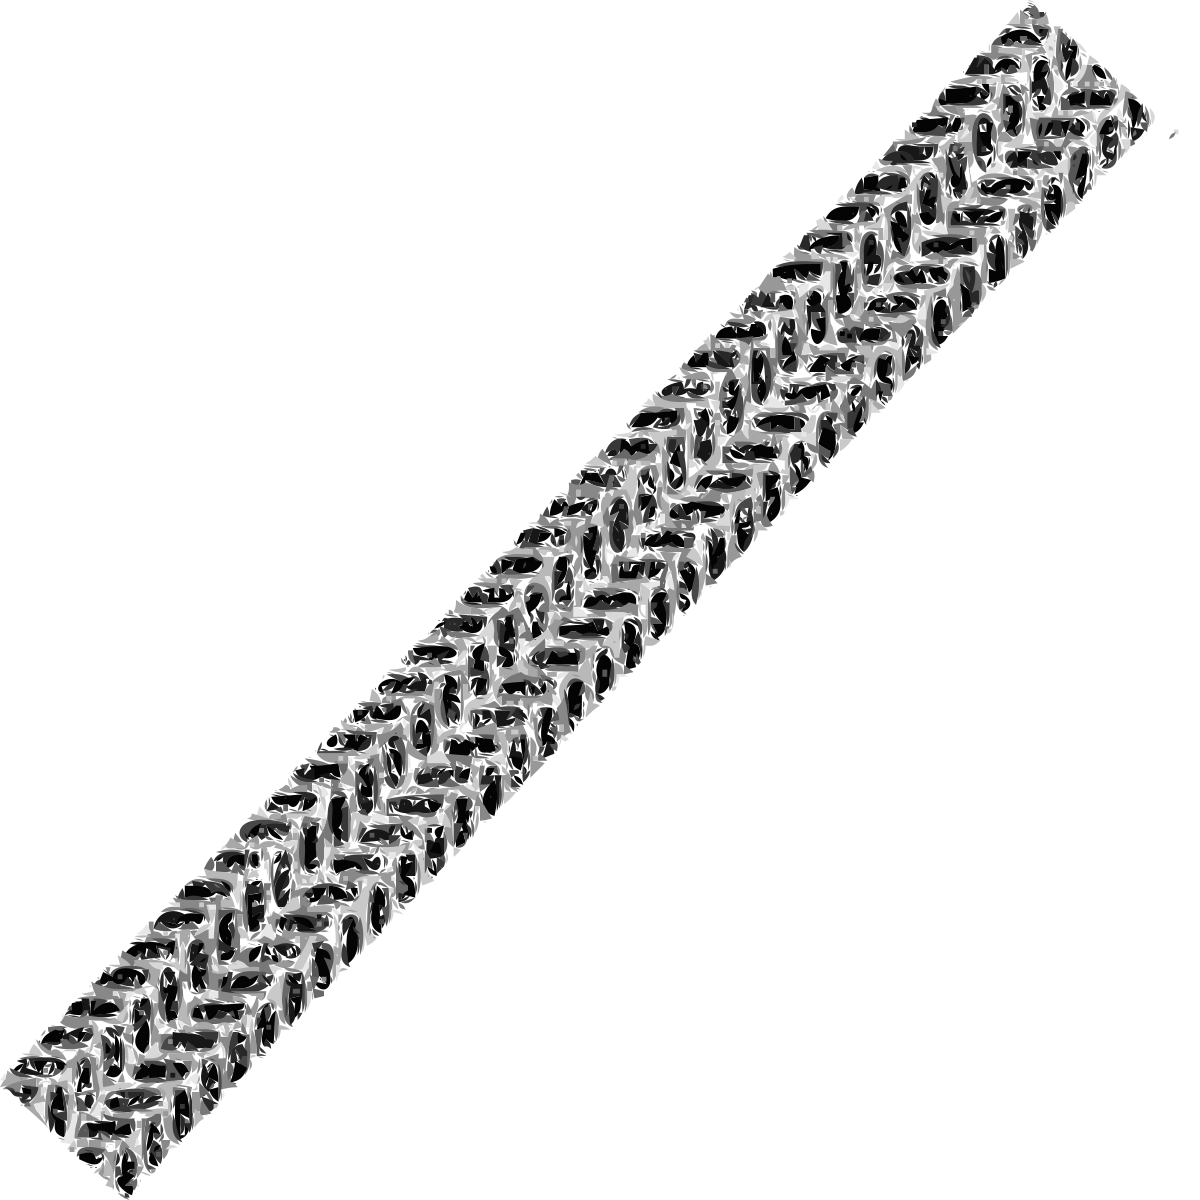 Skid mark wikipedia . Tire tread marks png vector library stock